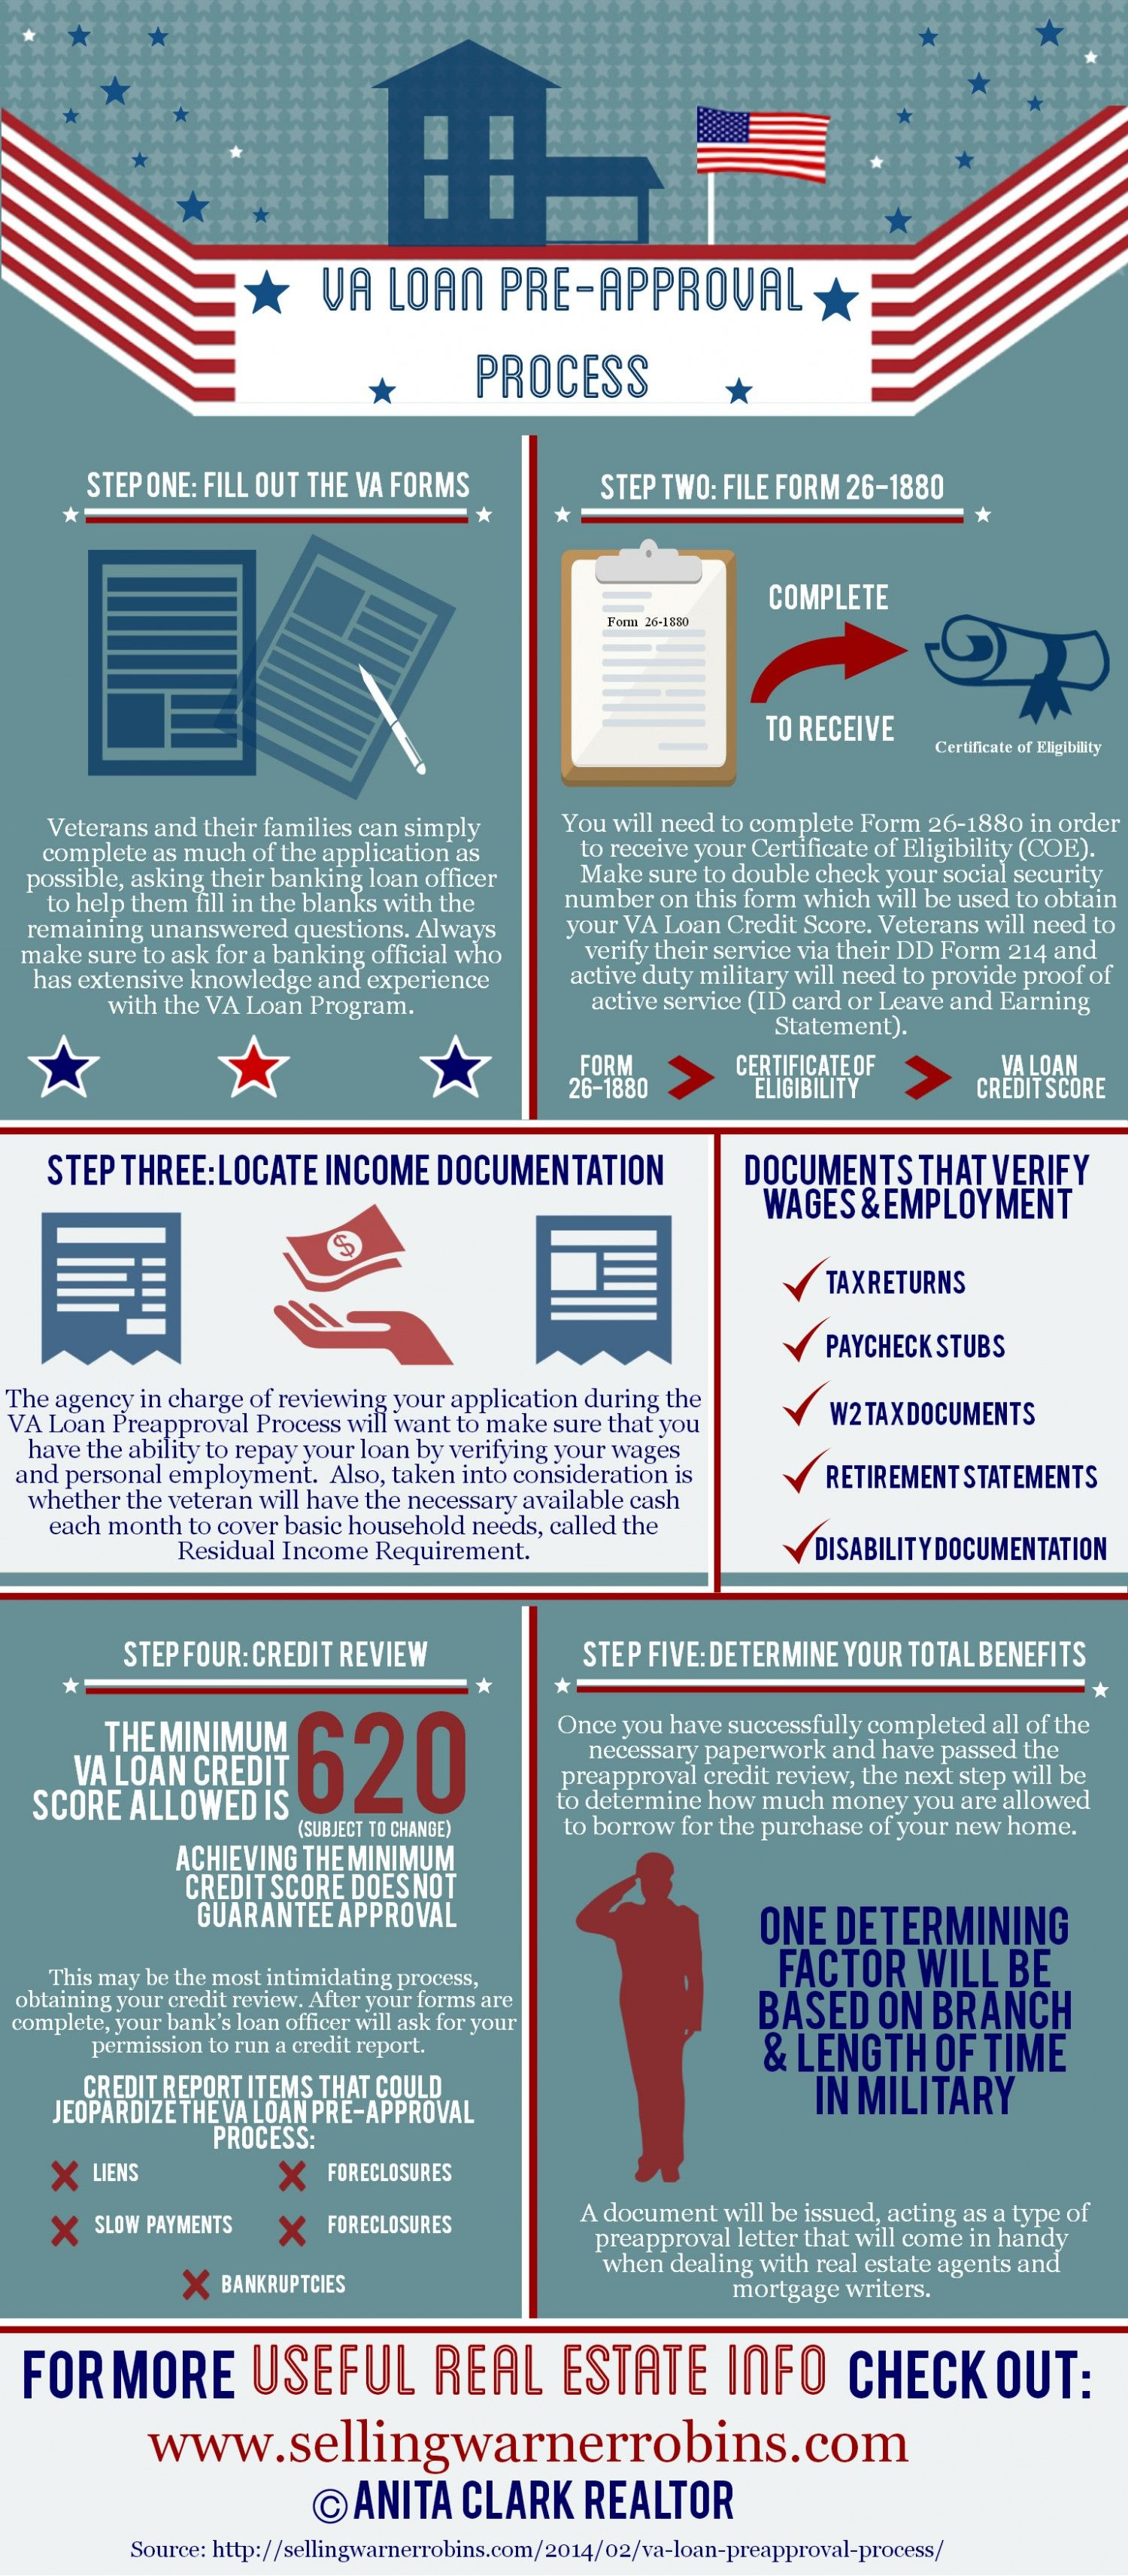 Va Loan Pre Approval Process Infographic Infographic Realestate